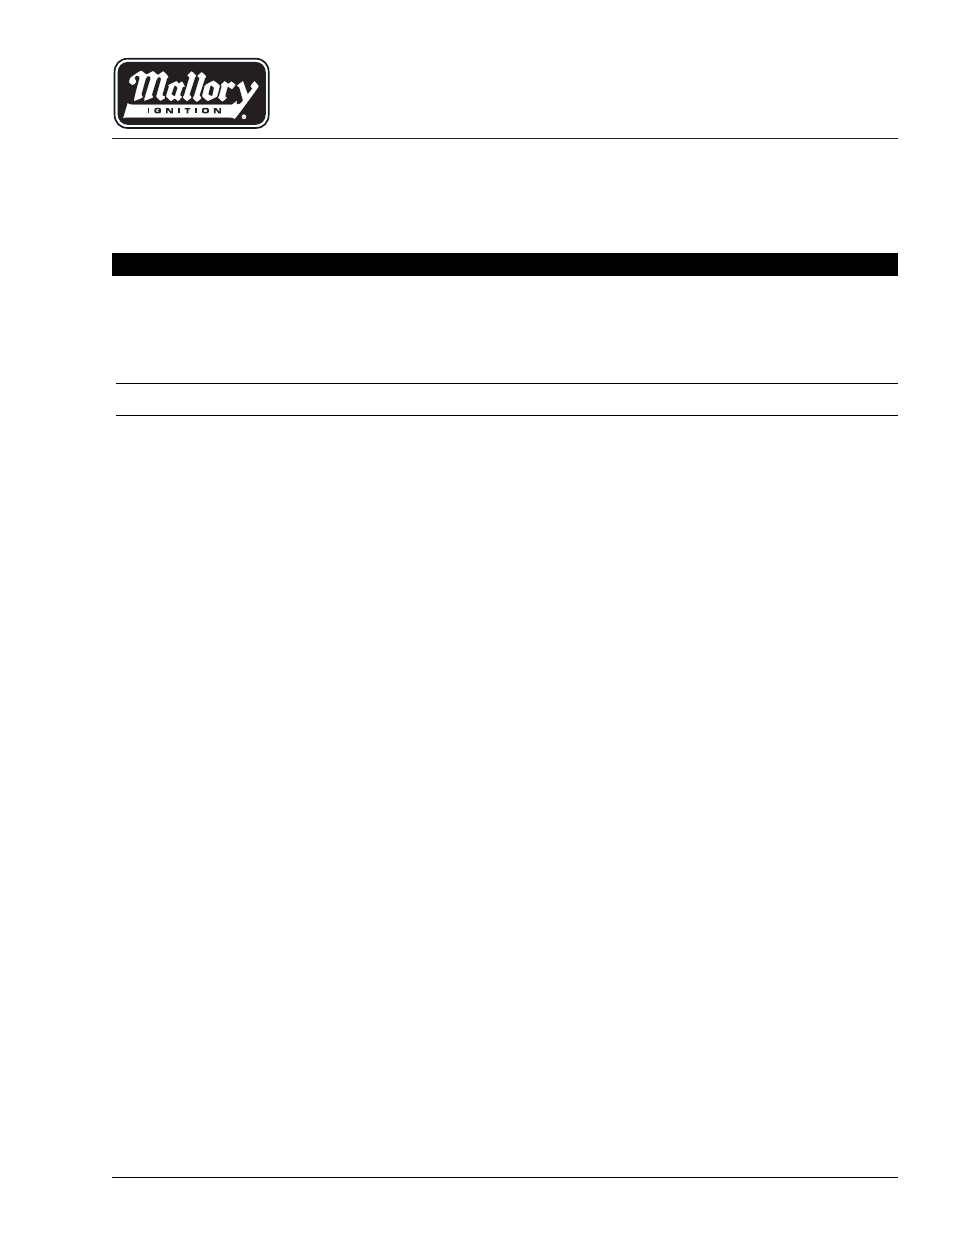 mallory ignition mallory unilite distributor page1 mallory ignition mallory unilite distributor user manual 13 mallory unilite wiring schematic at panicattacktreatment.co